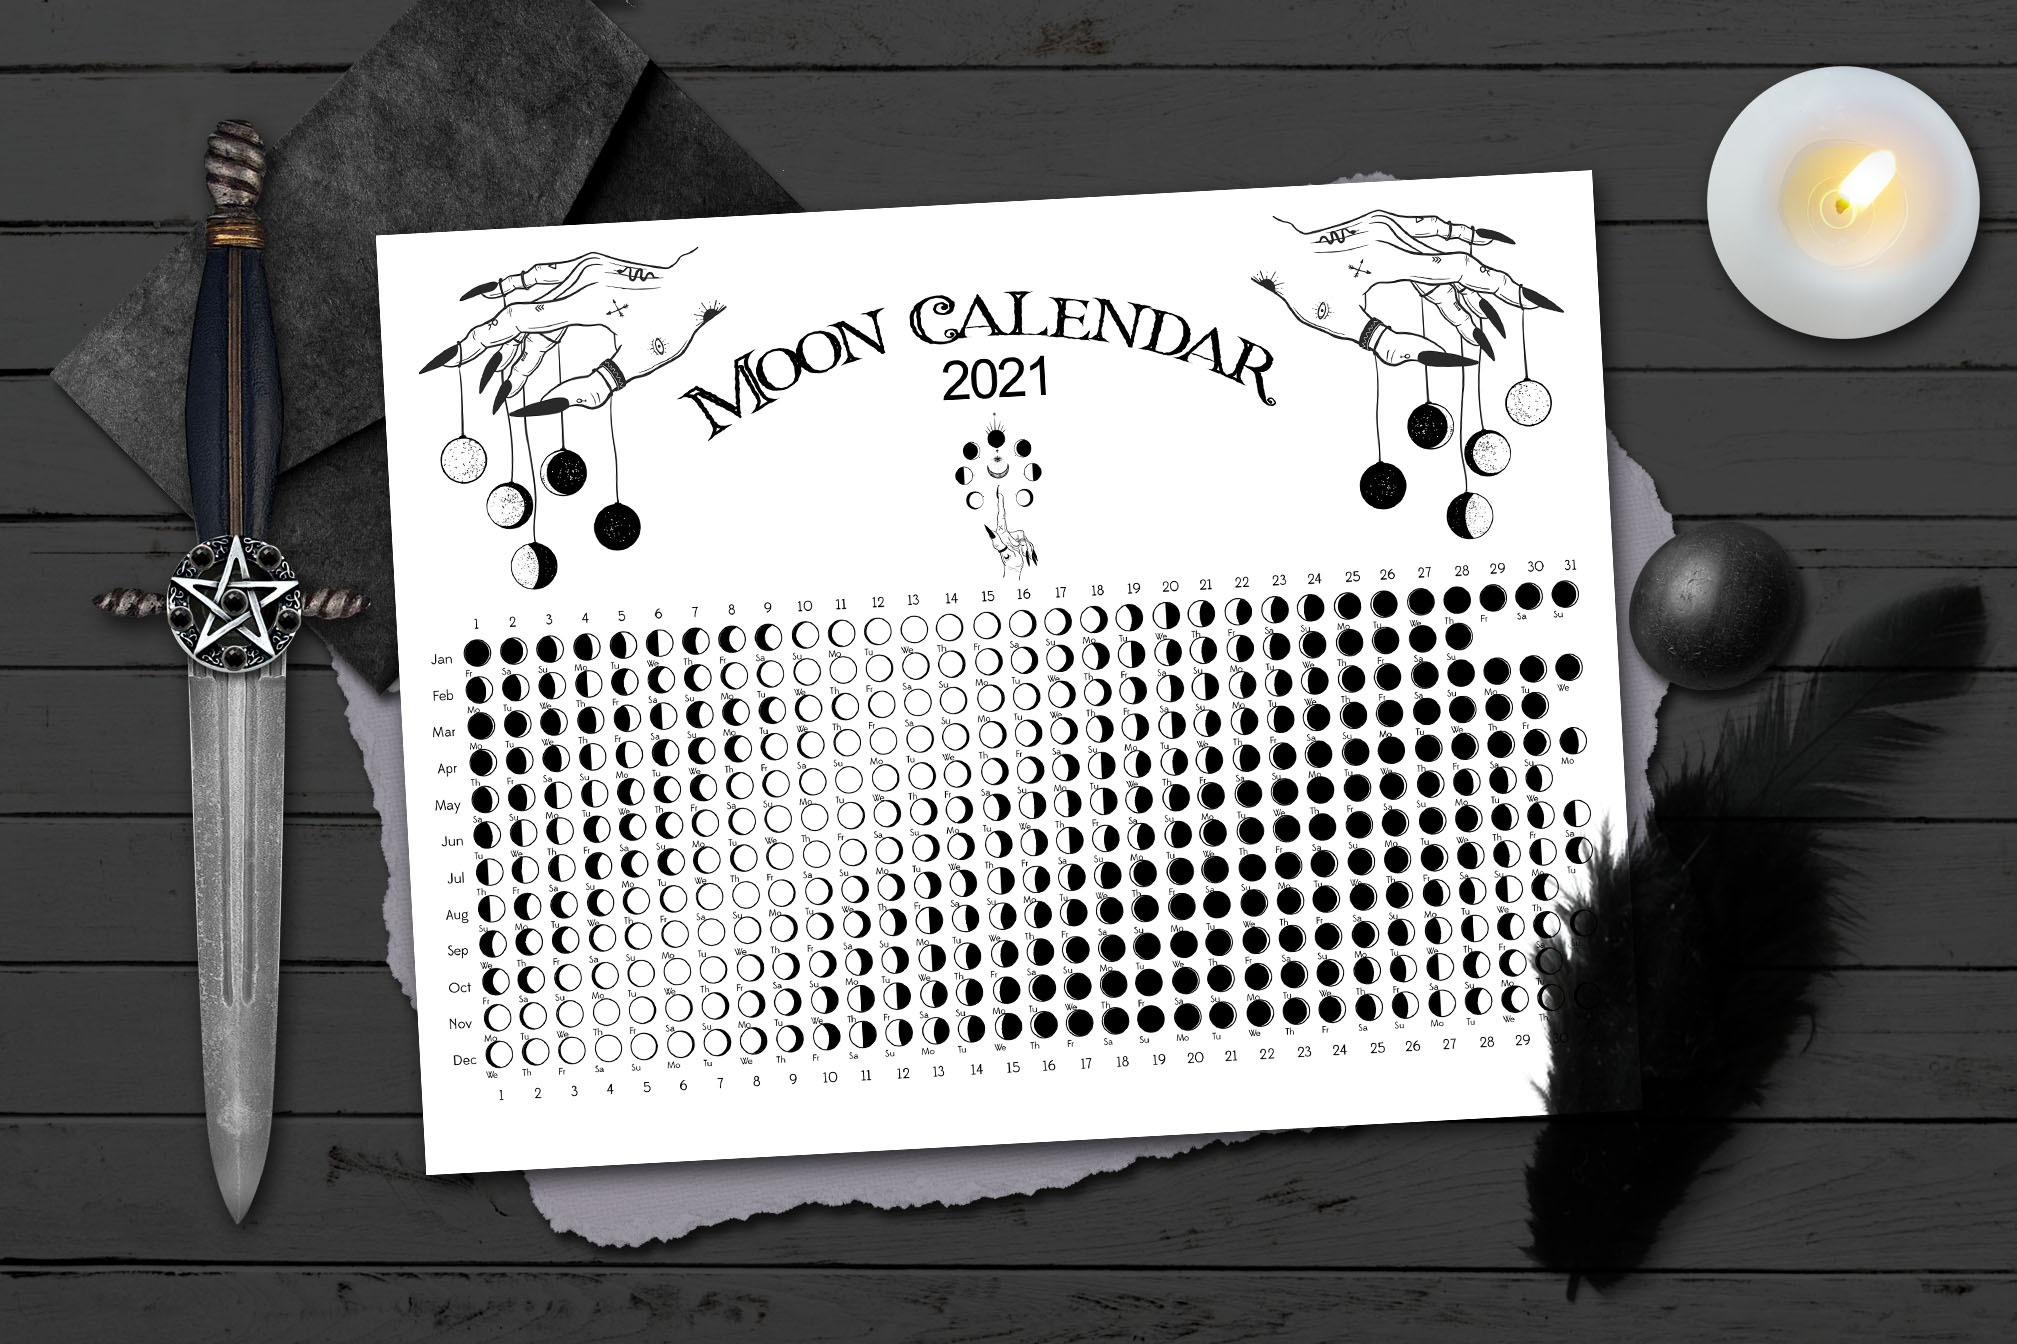 2021 WITCH MOON CALENDAR